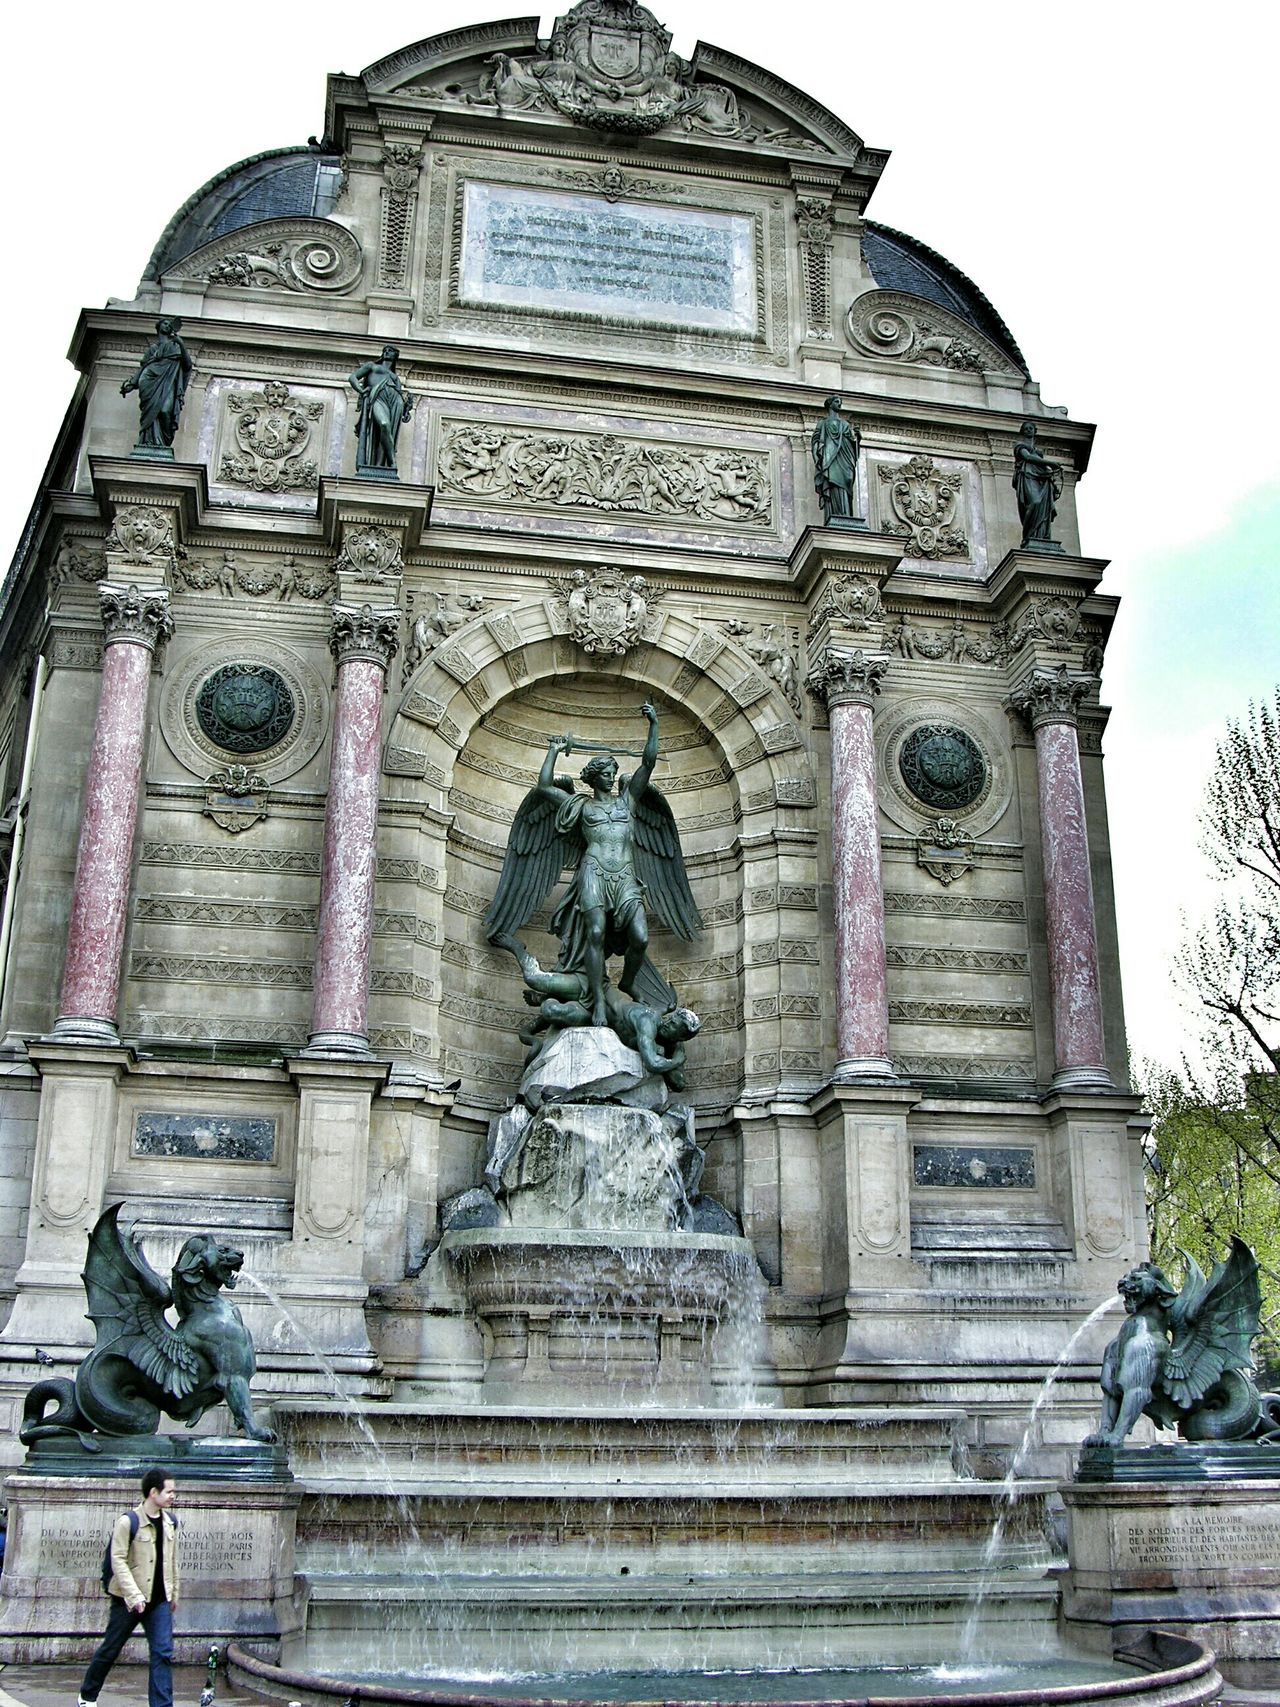 Postcards from Paris 28 = Fontaine Saint-Michel. Paris. Unykaphoto Paris Paris Citytour Postcards From Paris Fontaine Saint-Michel Paris